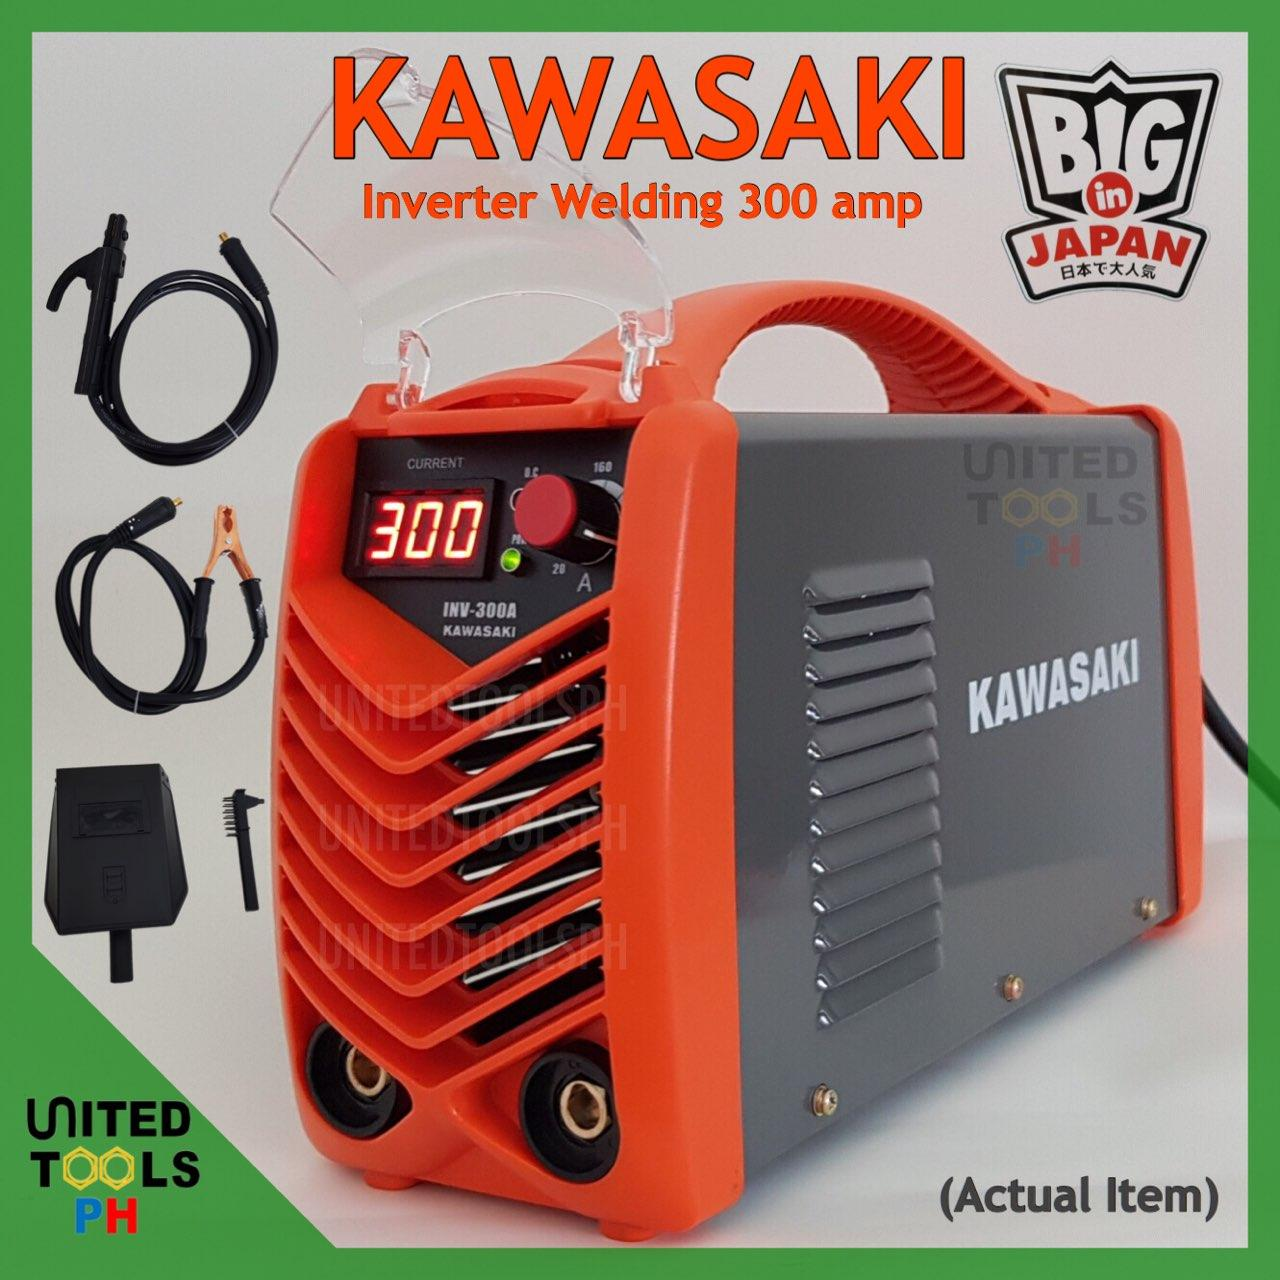 Kawasaki Philippines Price List Pressure Washer Wiring Harness Iding Machine For Sale Inverter Welding 300amp